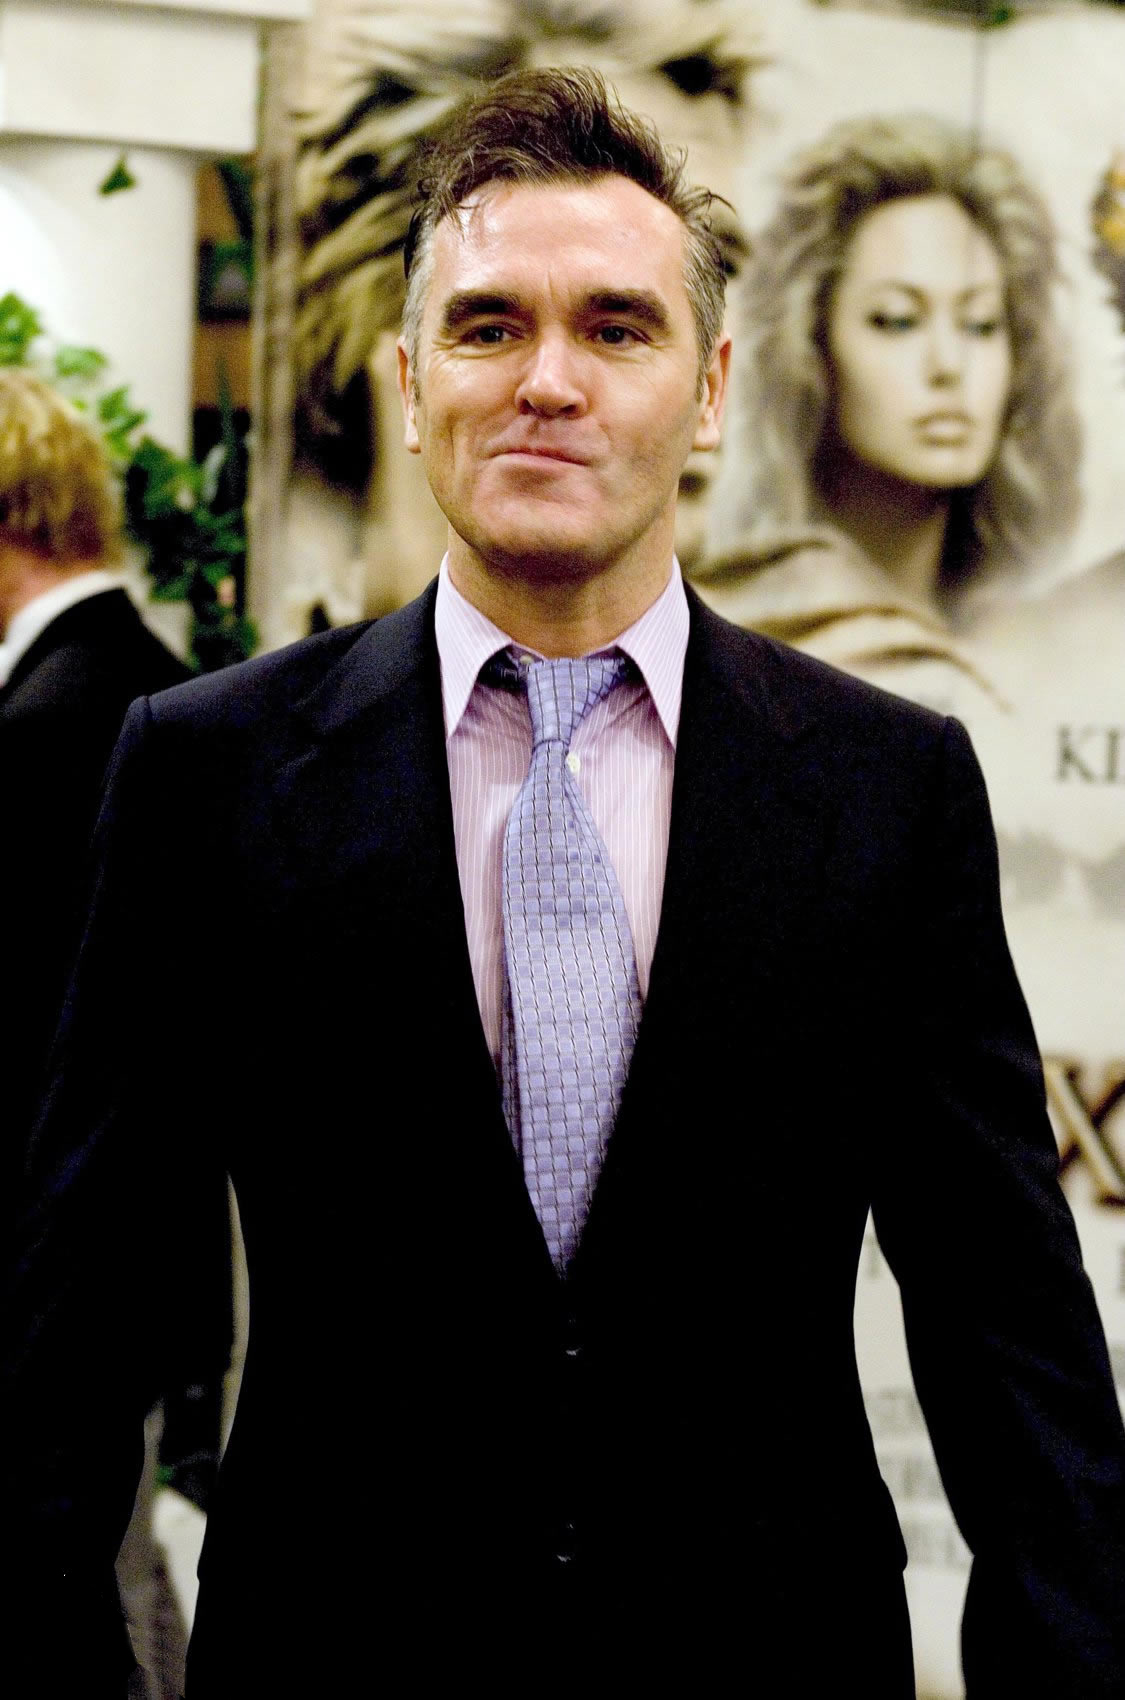 http://upload.wikimedia.org/wikipedia/commons/4/44/Morrissey-Alexander-Film-.jpg